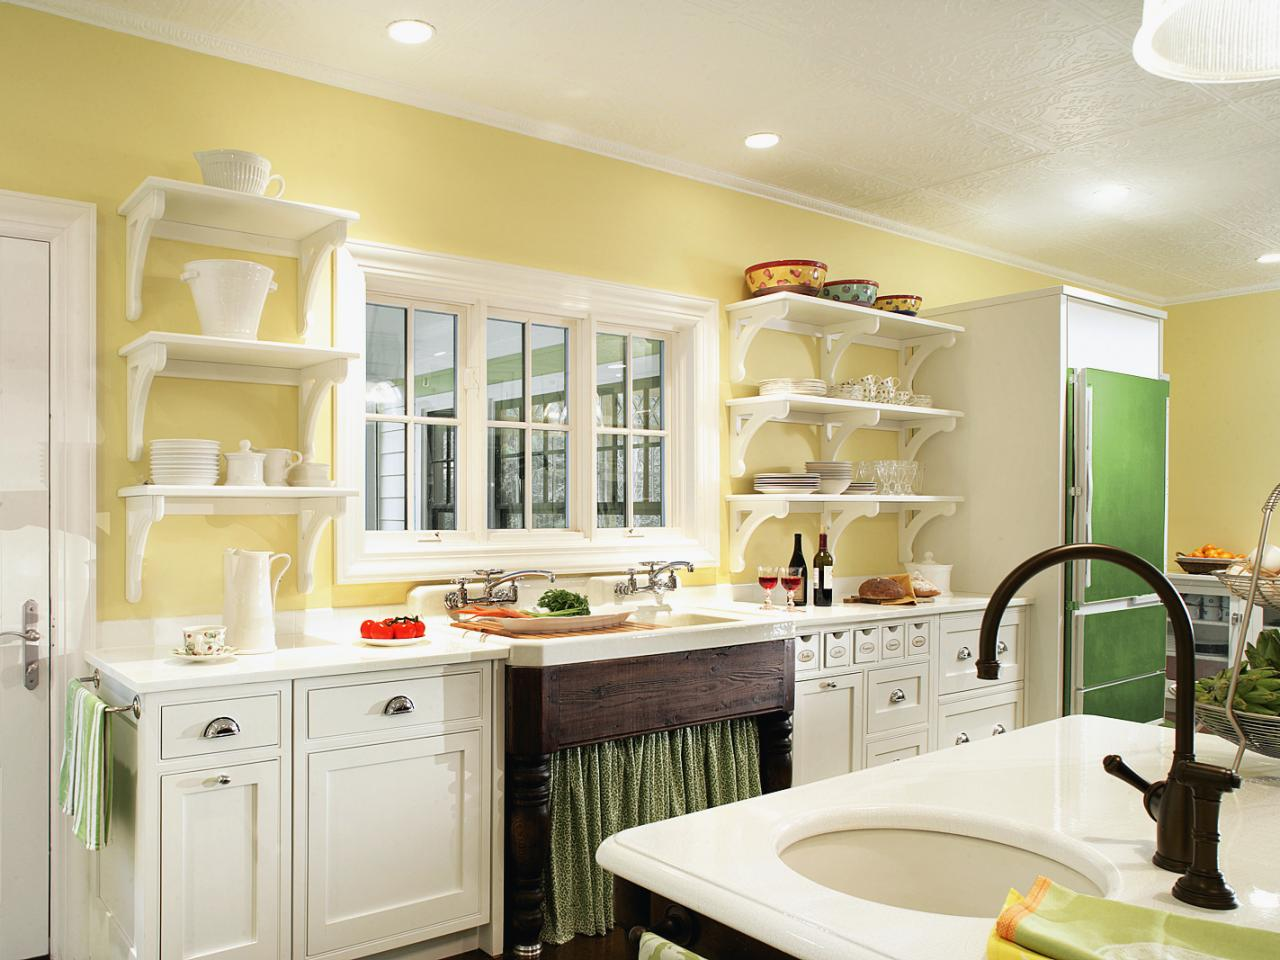 Painting kitchen tables pictures ideas tips from hgtv What color cabinets go with yellow walls